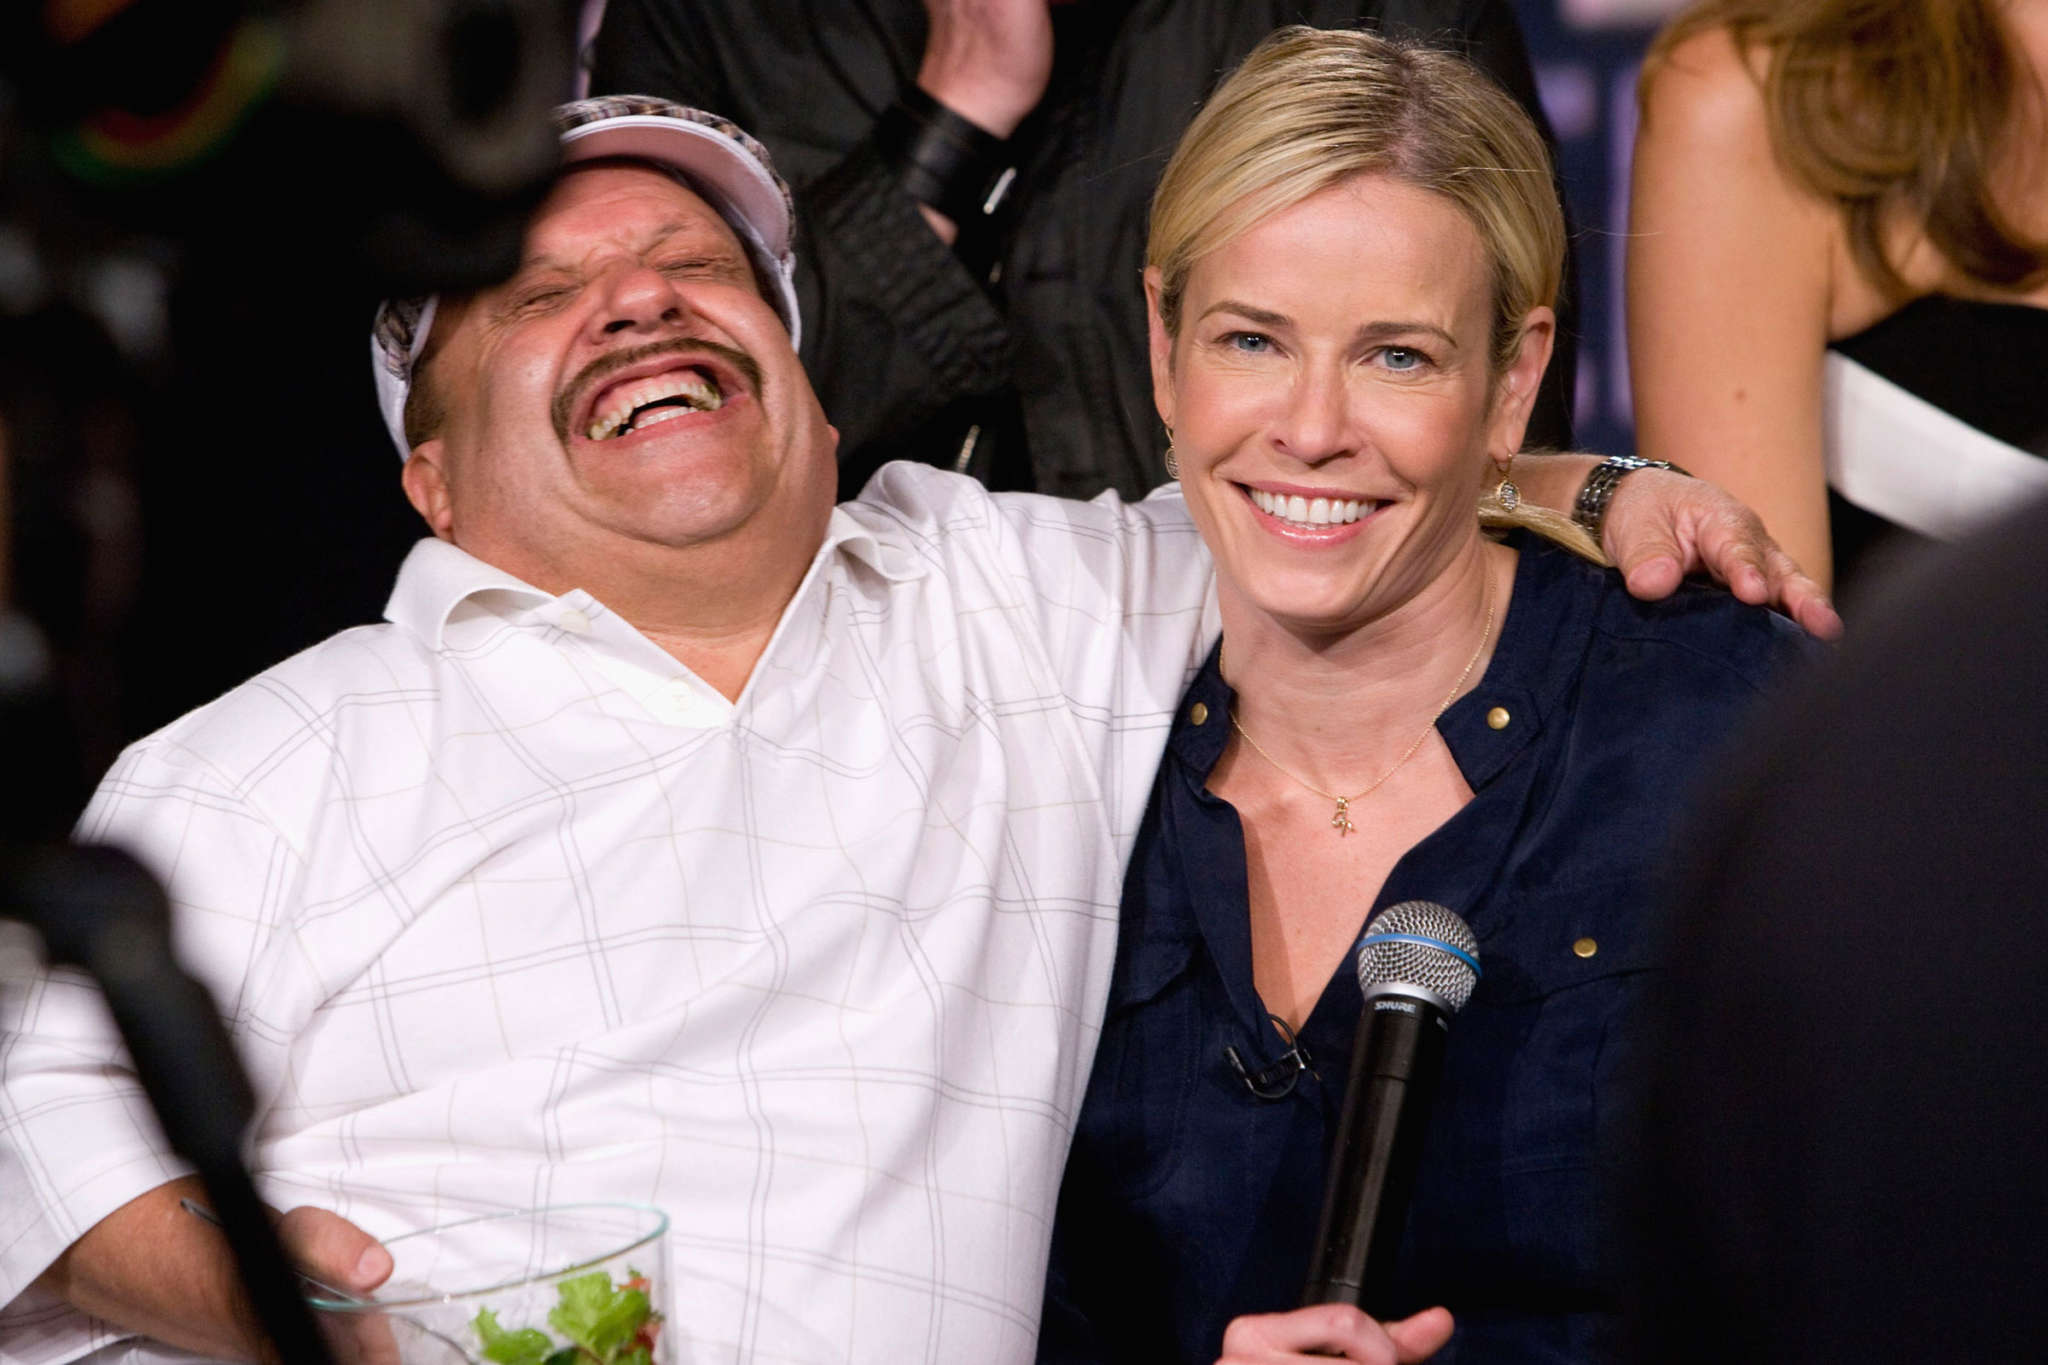 Chuy Bravo, 'Chelsea Lately' Sidekick, Dies at 63